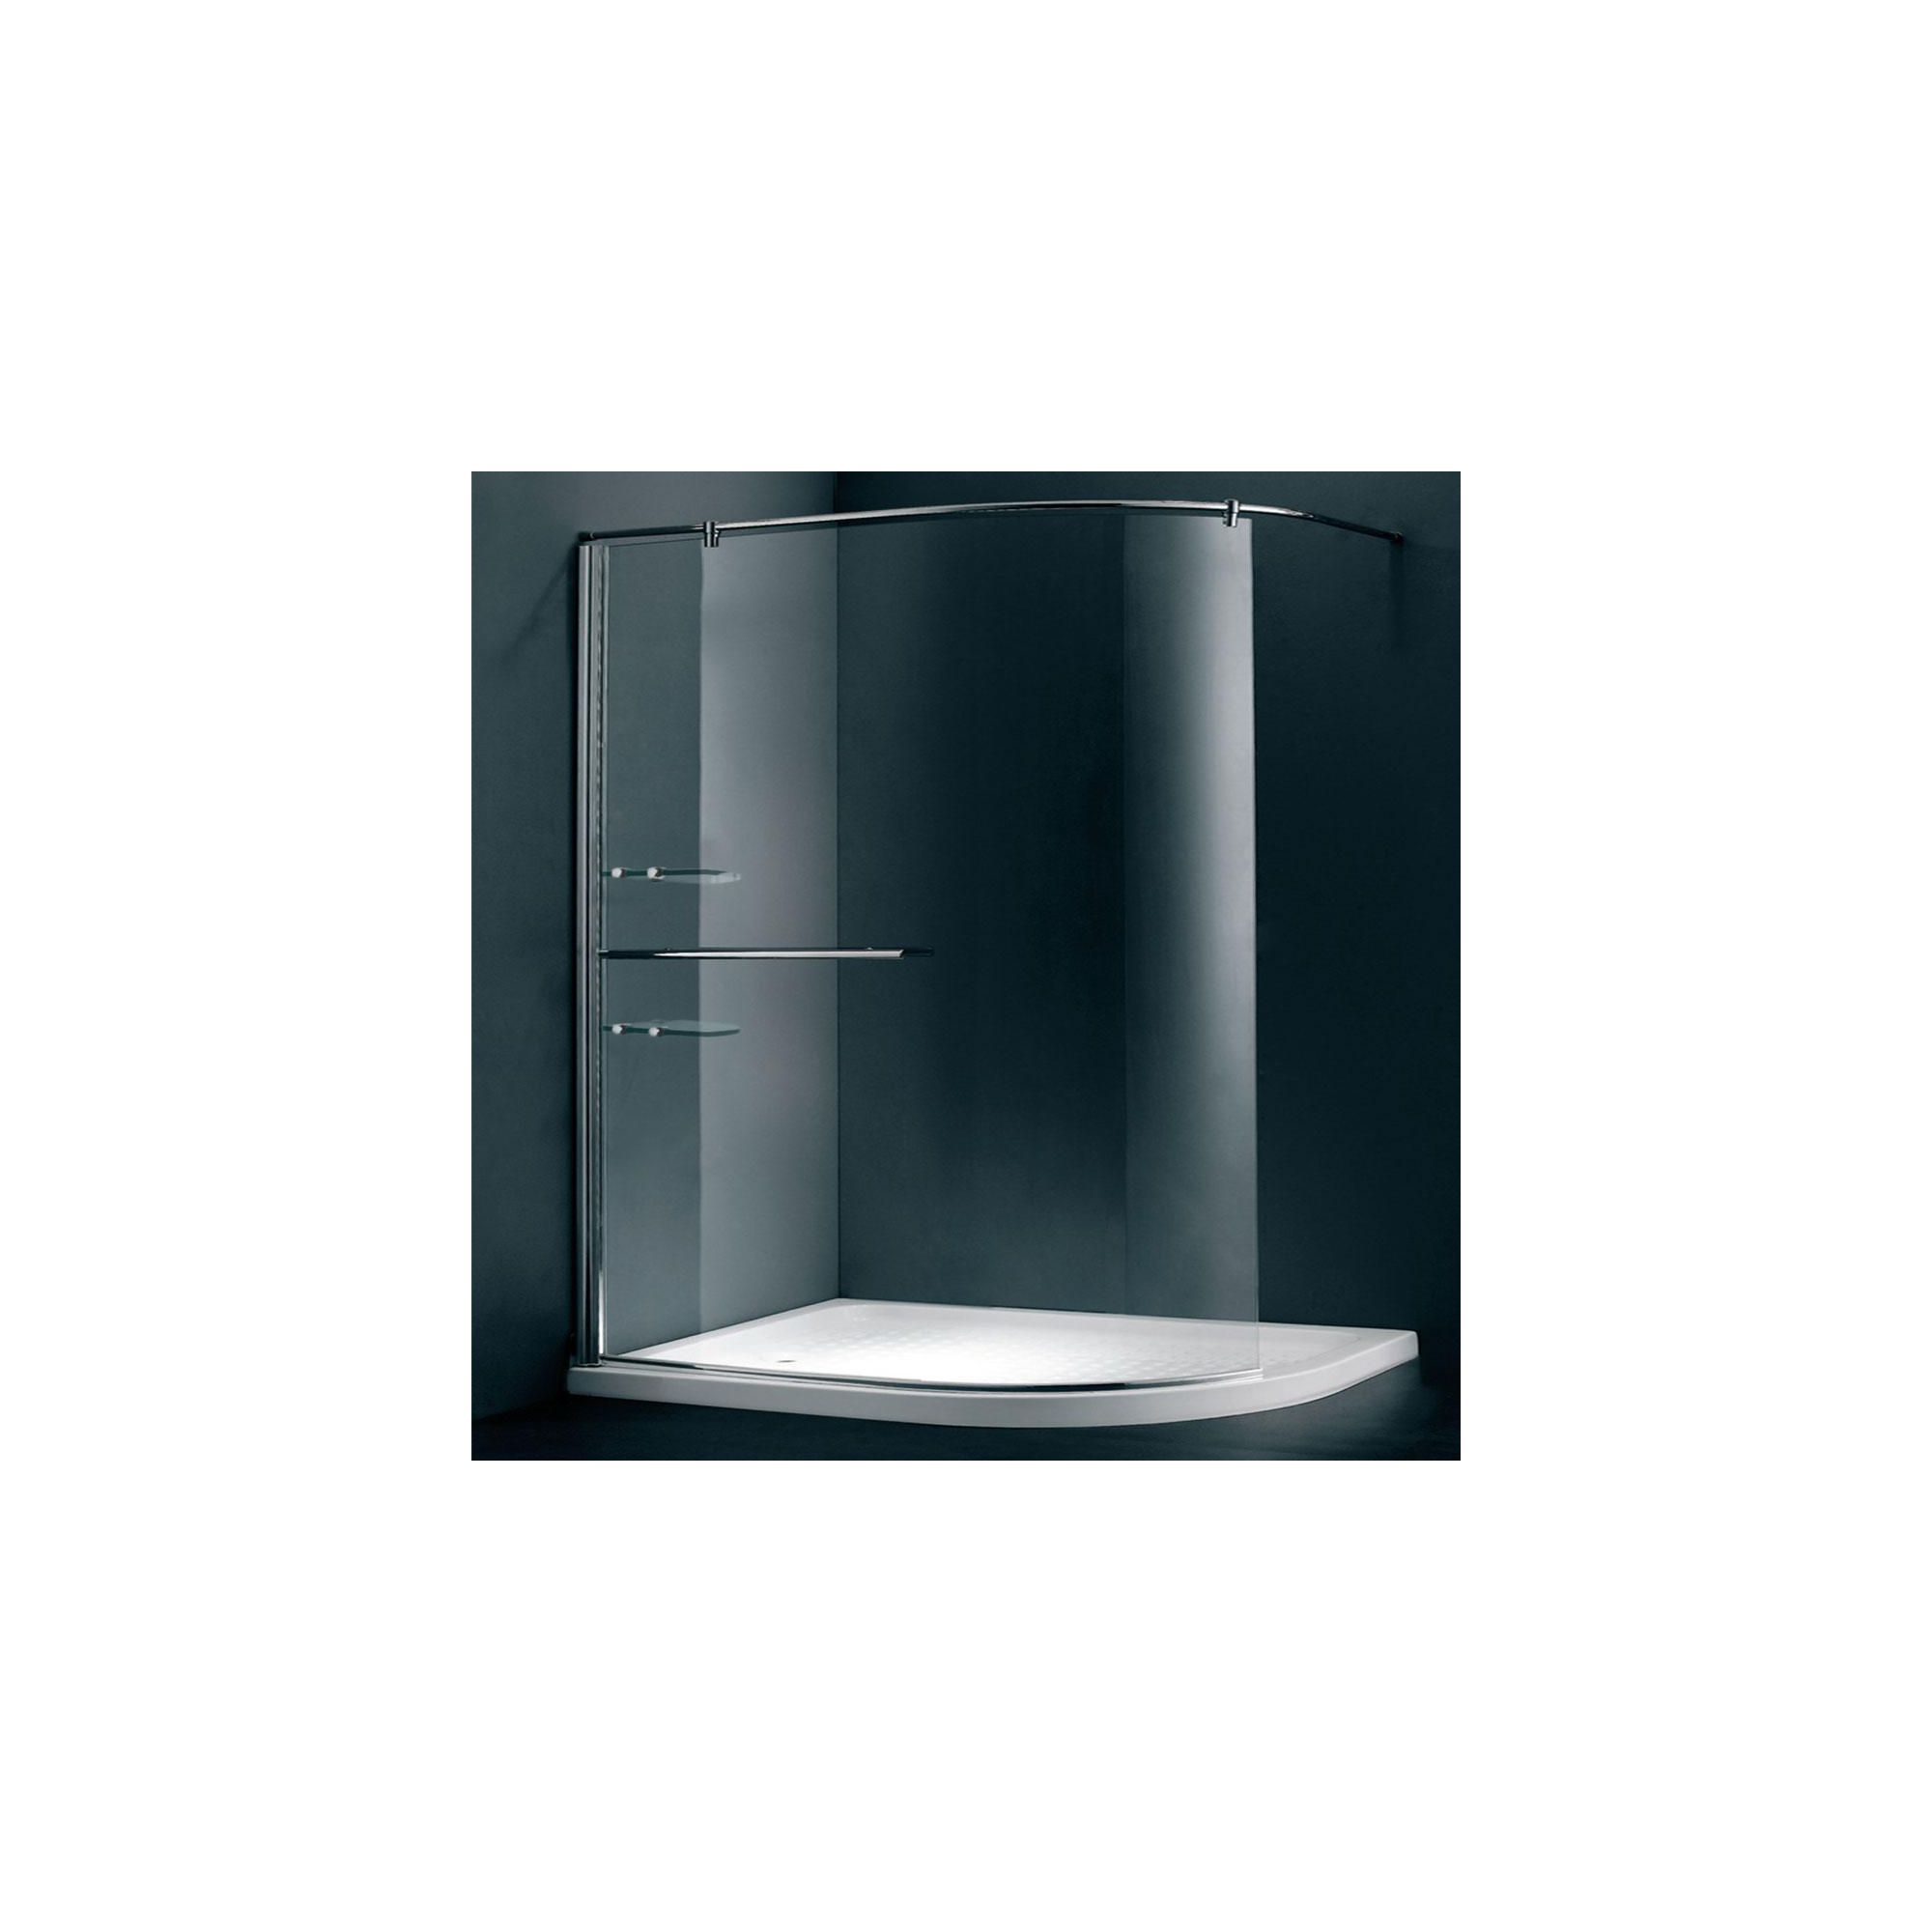 Duchy Style Curved Walk-In Wet Room Glass Panel 1200mm x 900mm, 6mm Glass at Tesco Direct